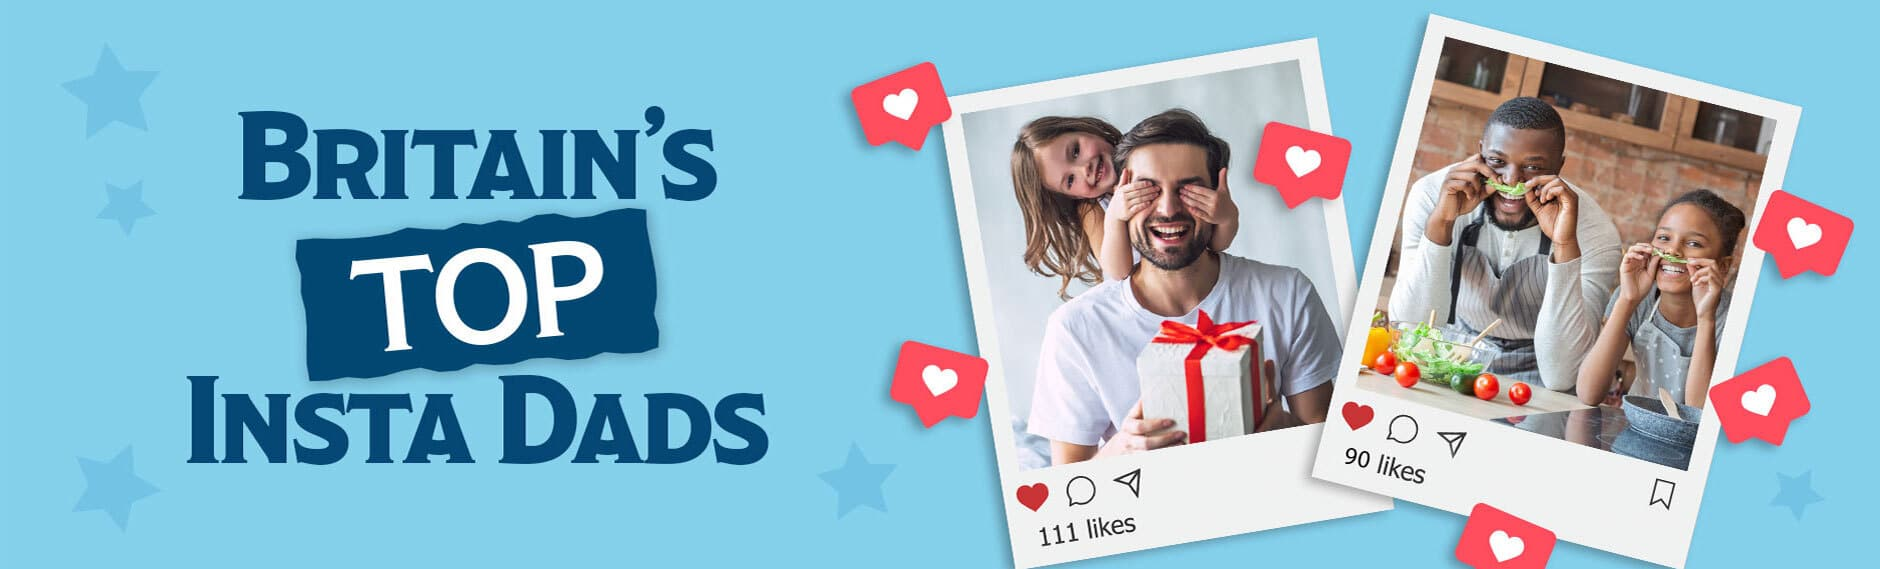 Top UK Locations For Instagrammer Dads